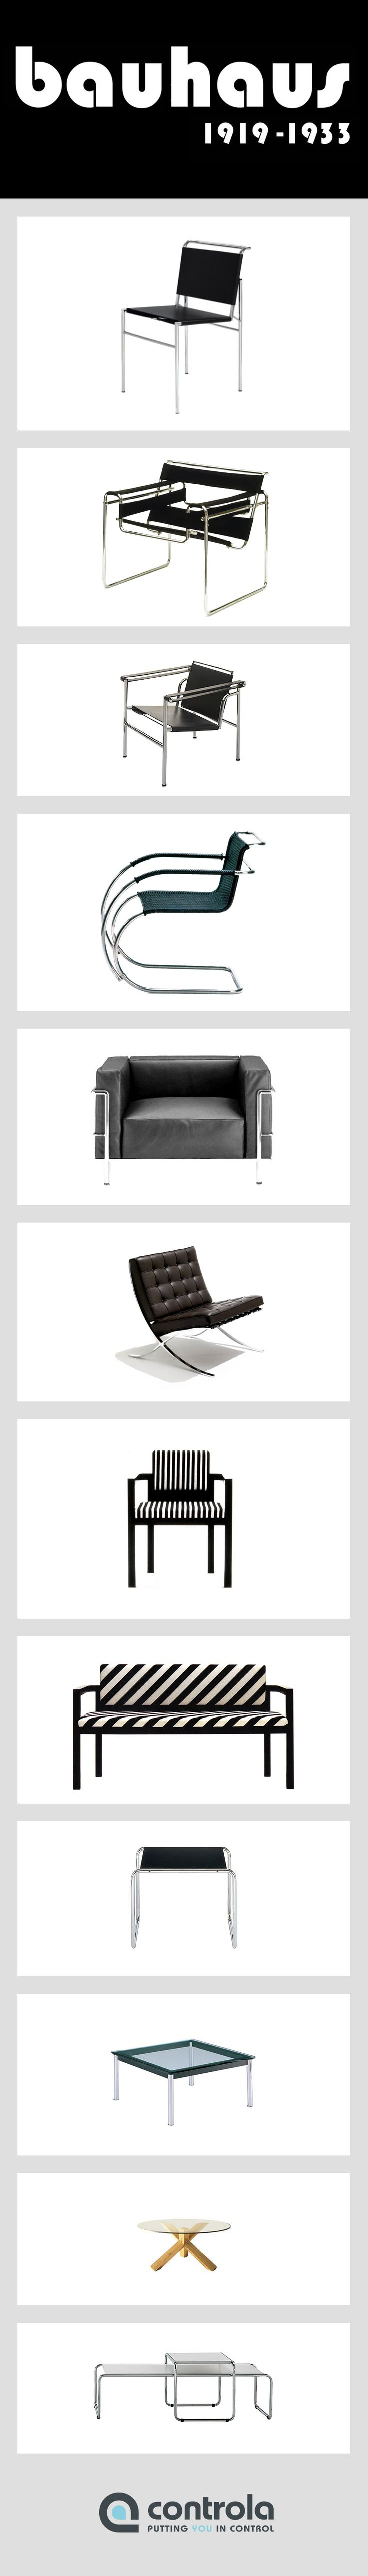 #bauhaus furniture